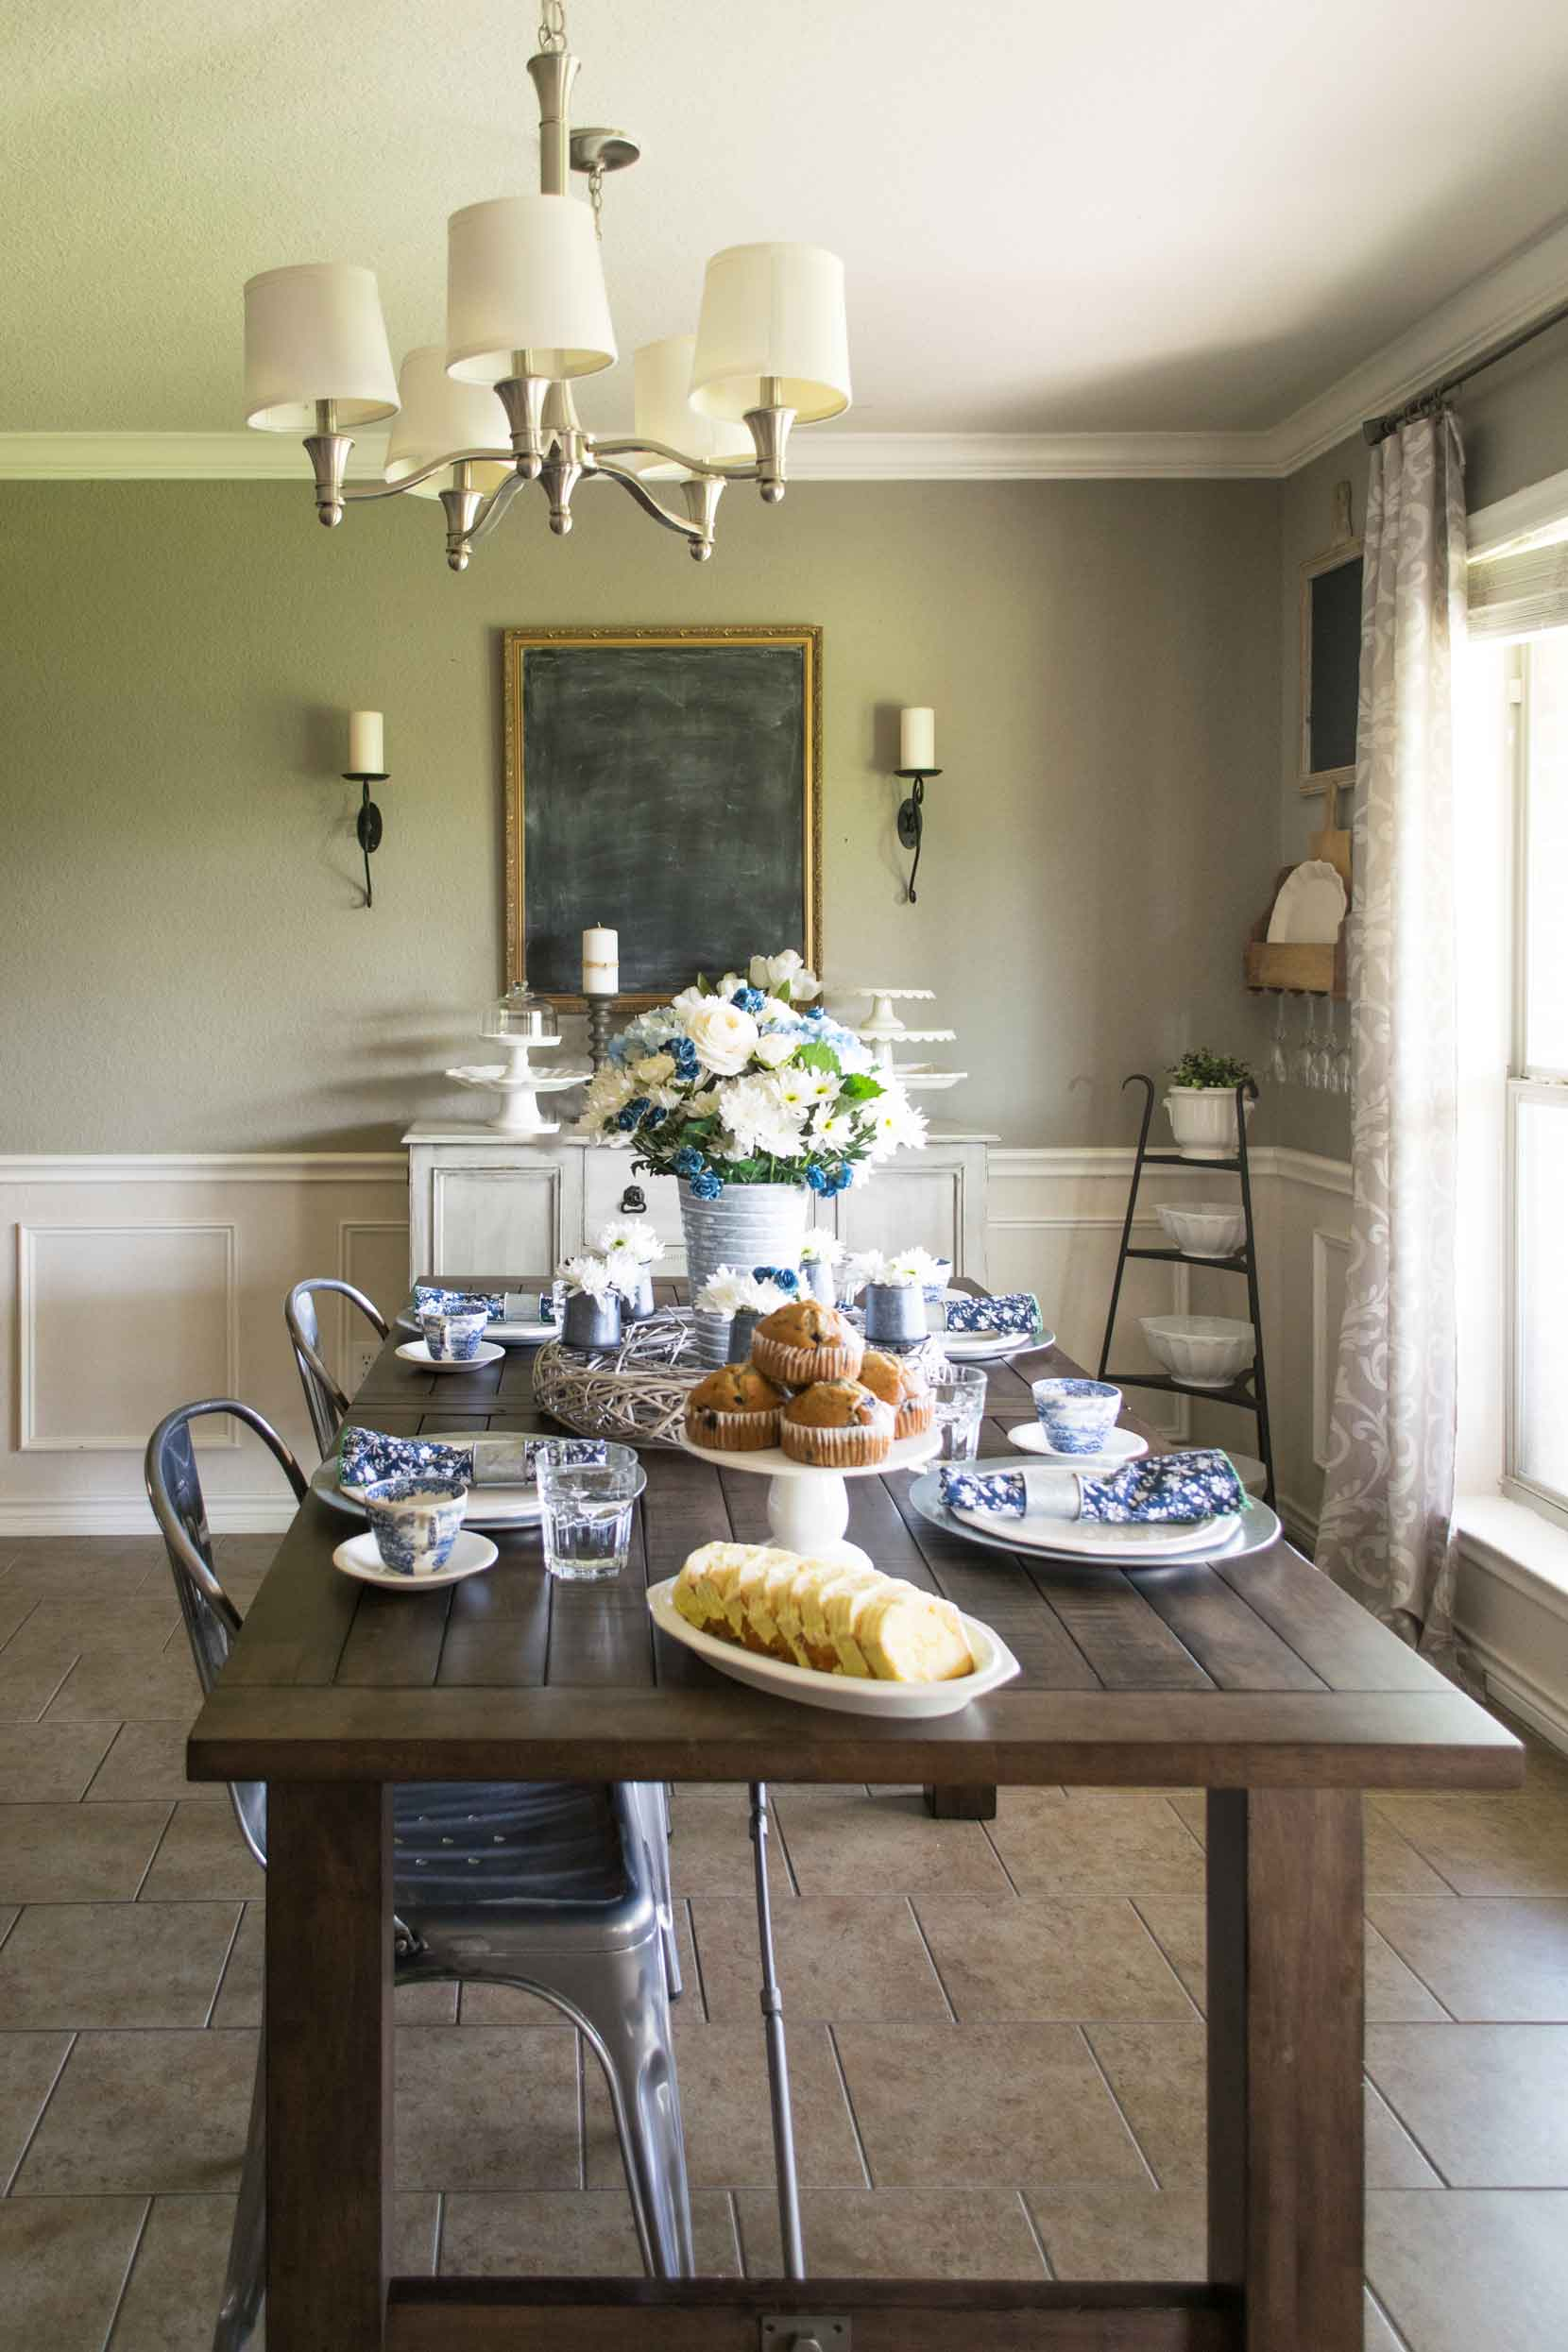 Dining room set for spring with blue and white accents